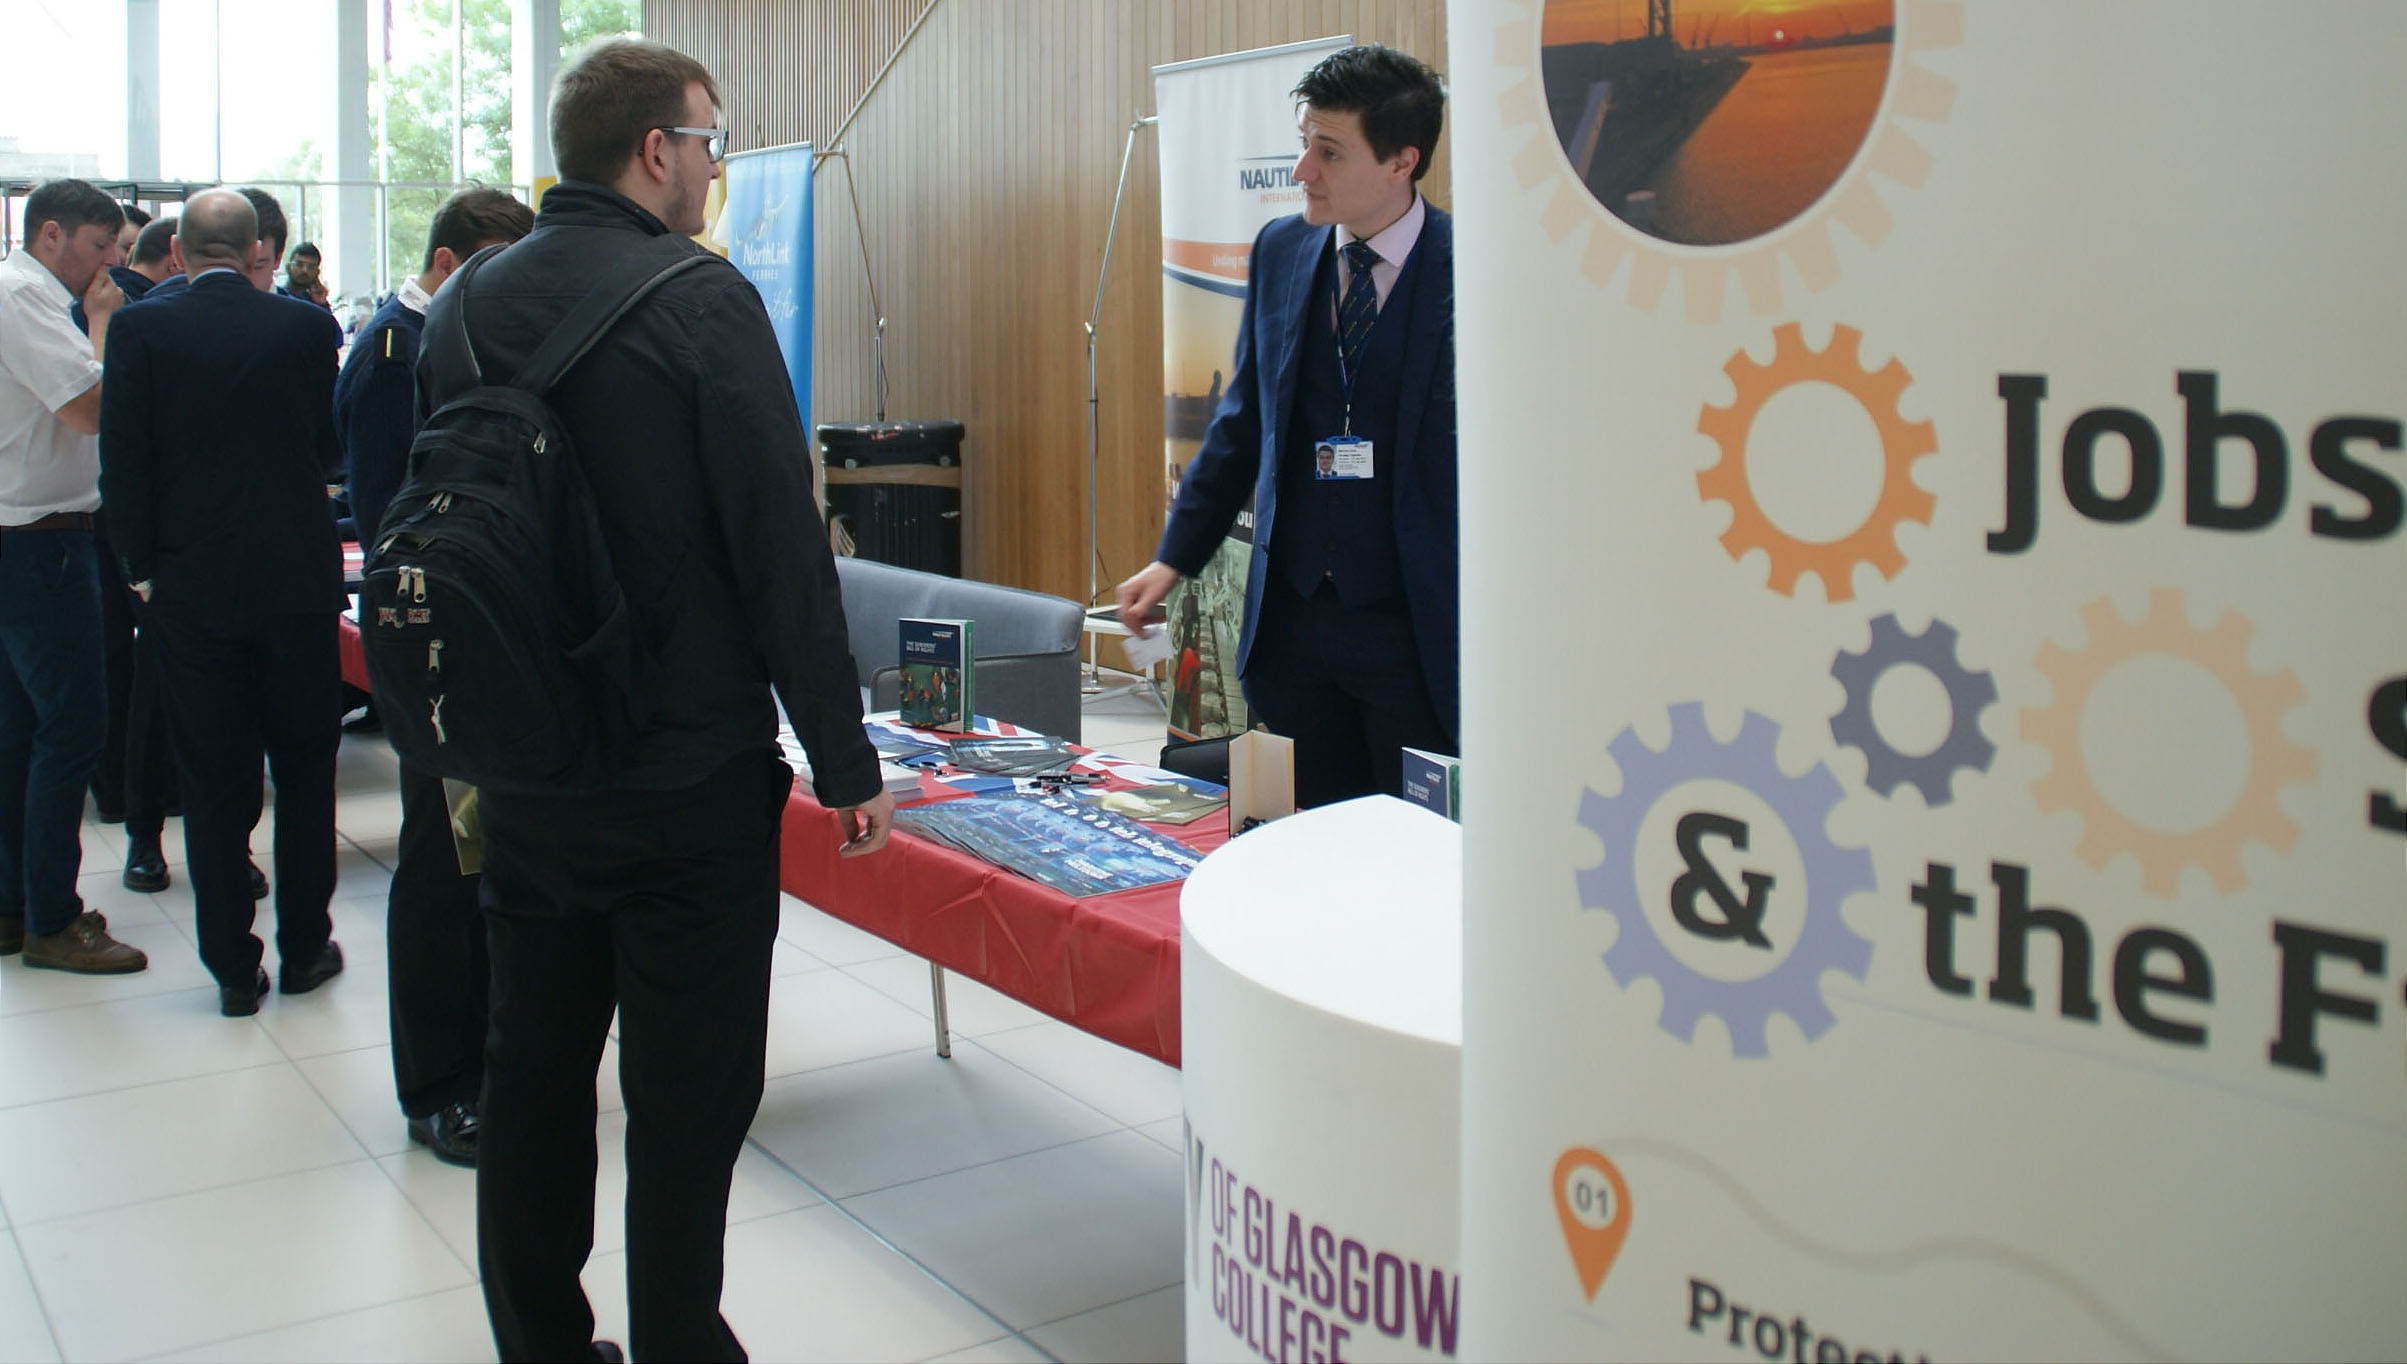 Nautilus Internatonal stages jobs event at City of Glasgow College